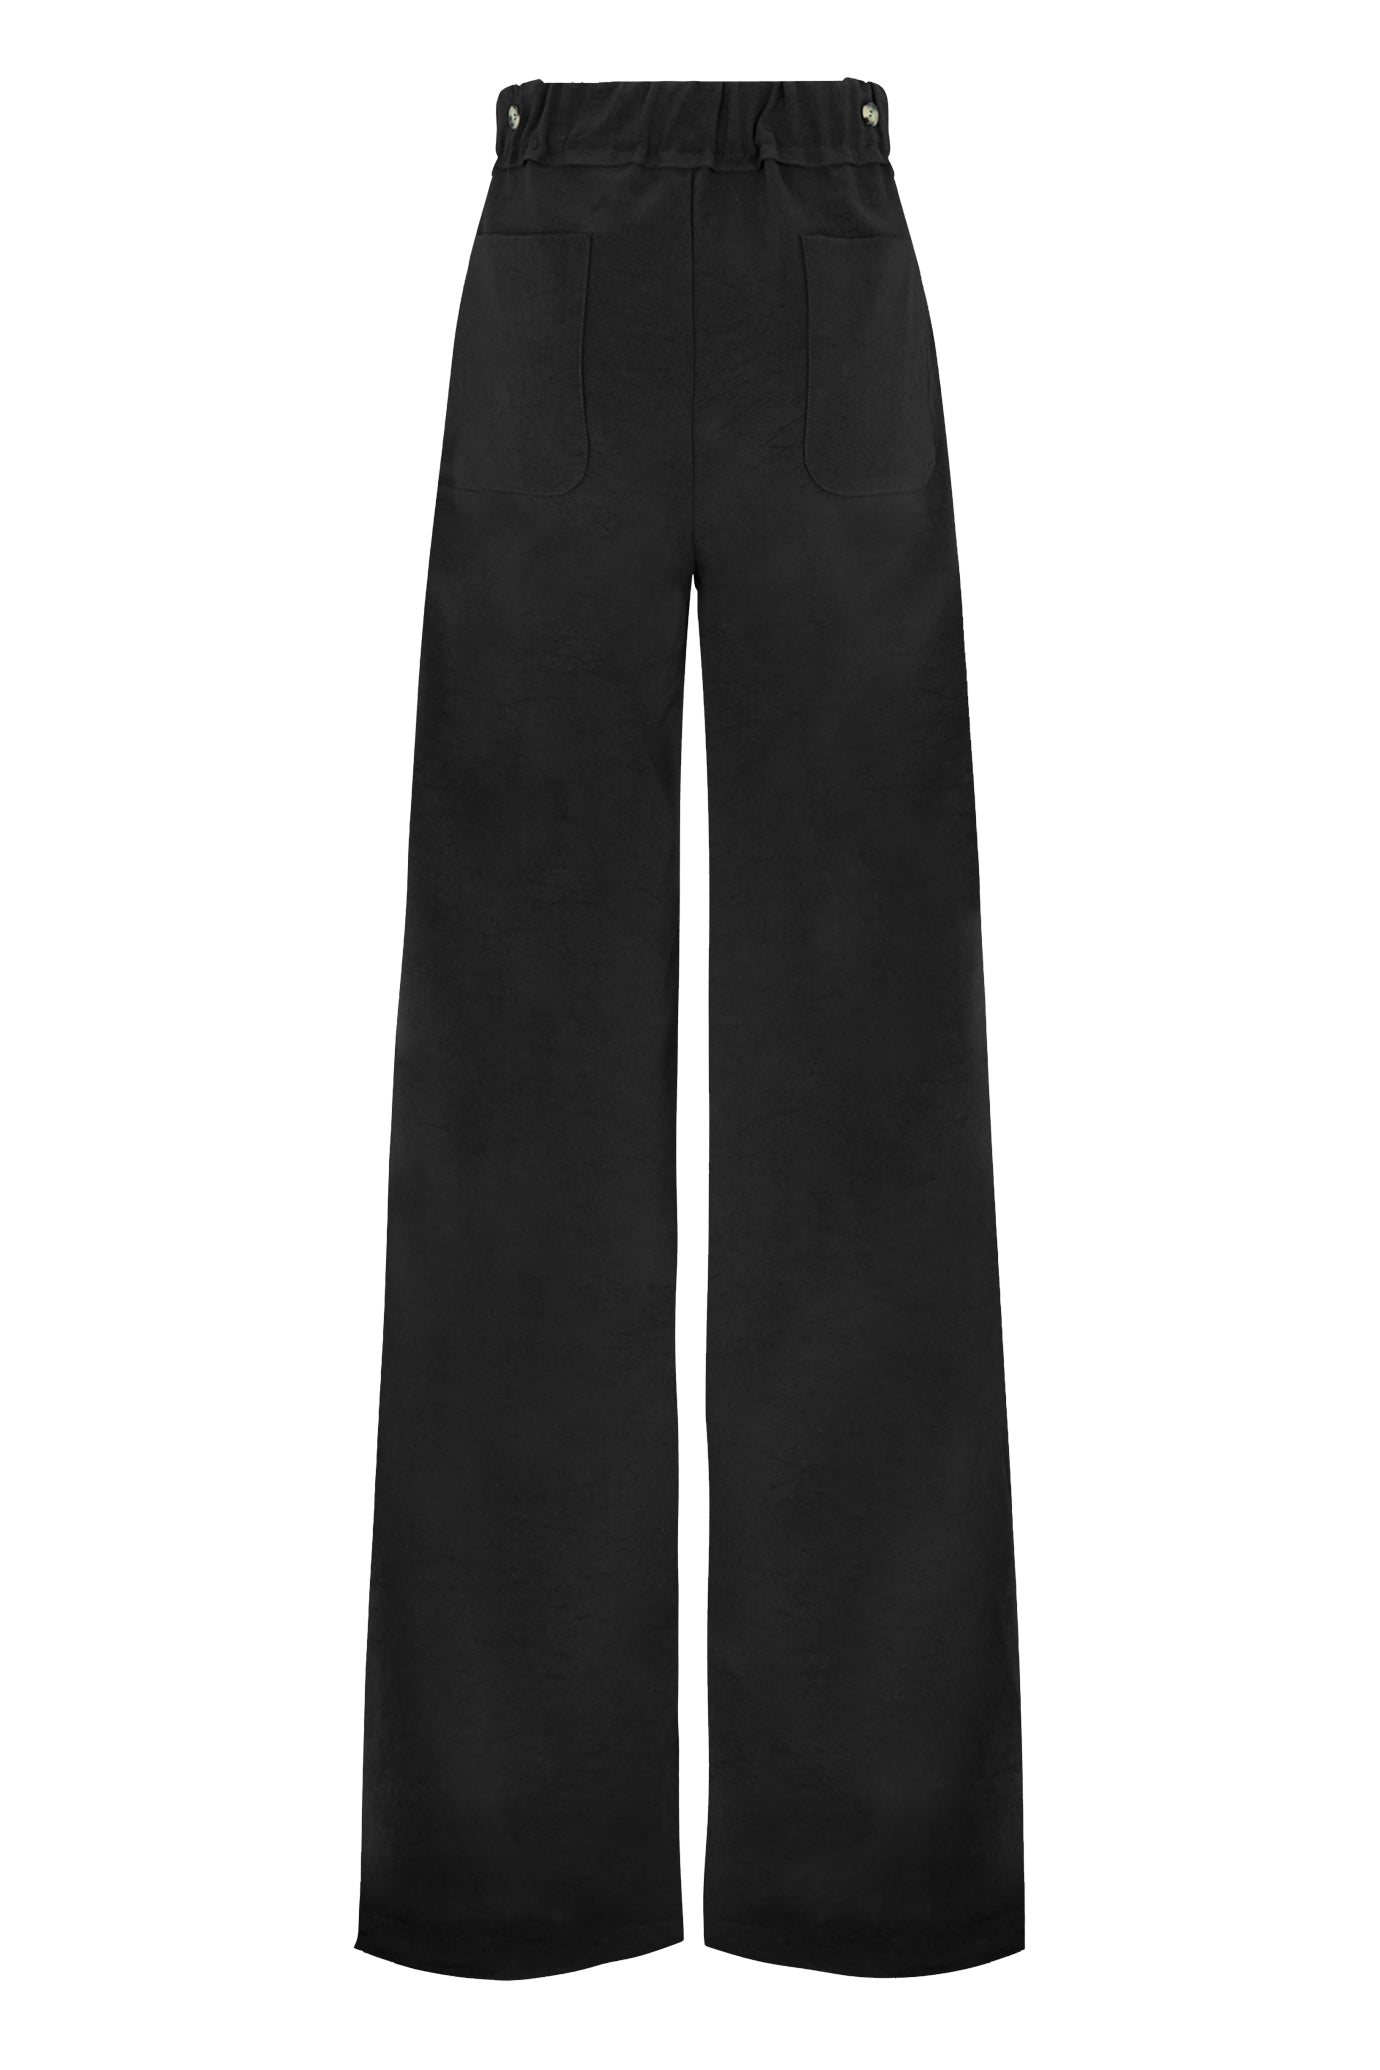 The Boyfriend Trouser - Black Natural Fabric